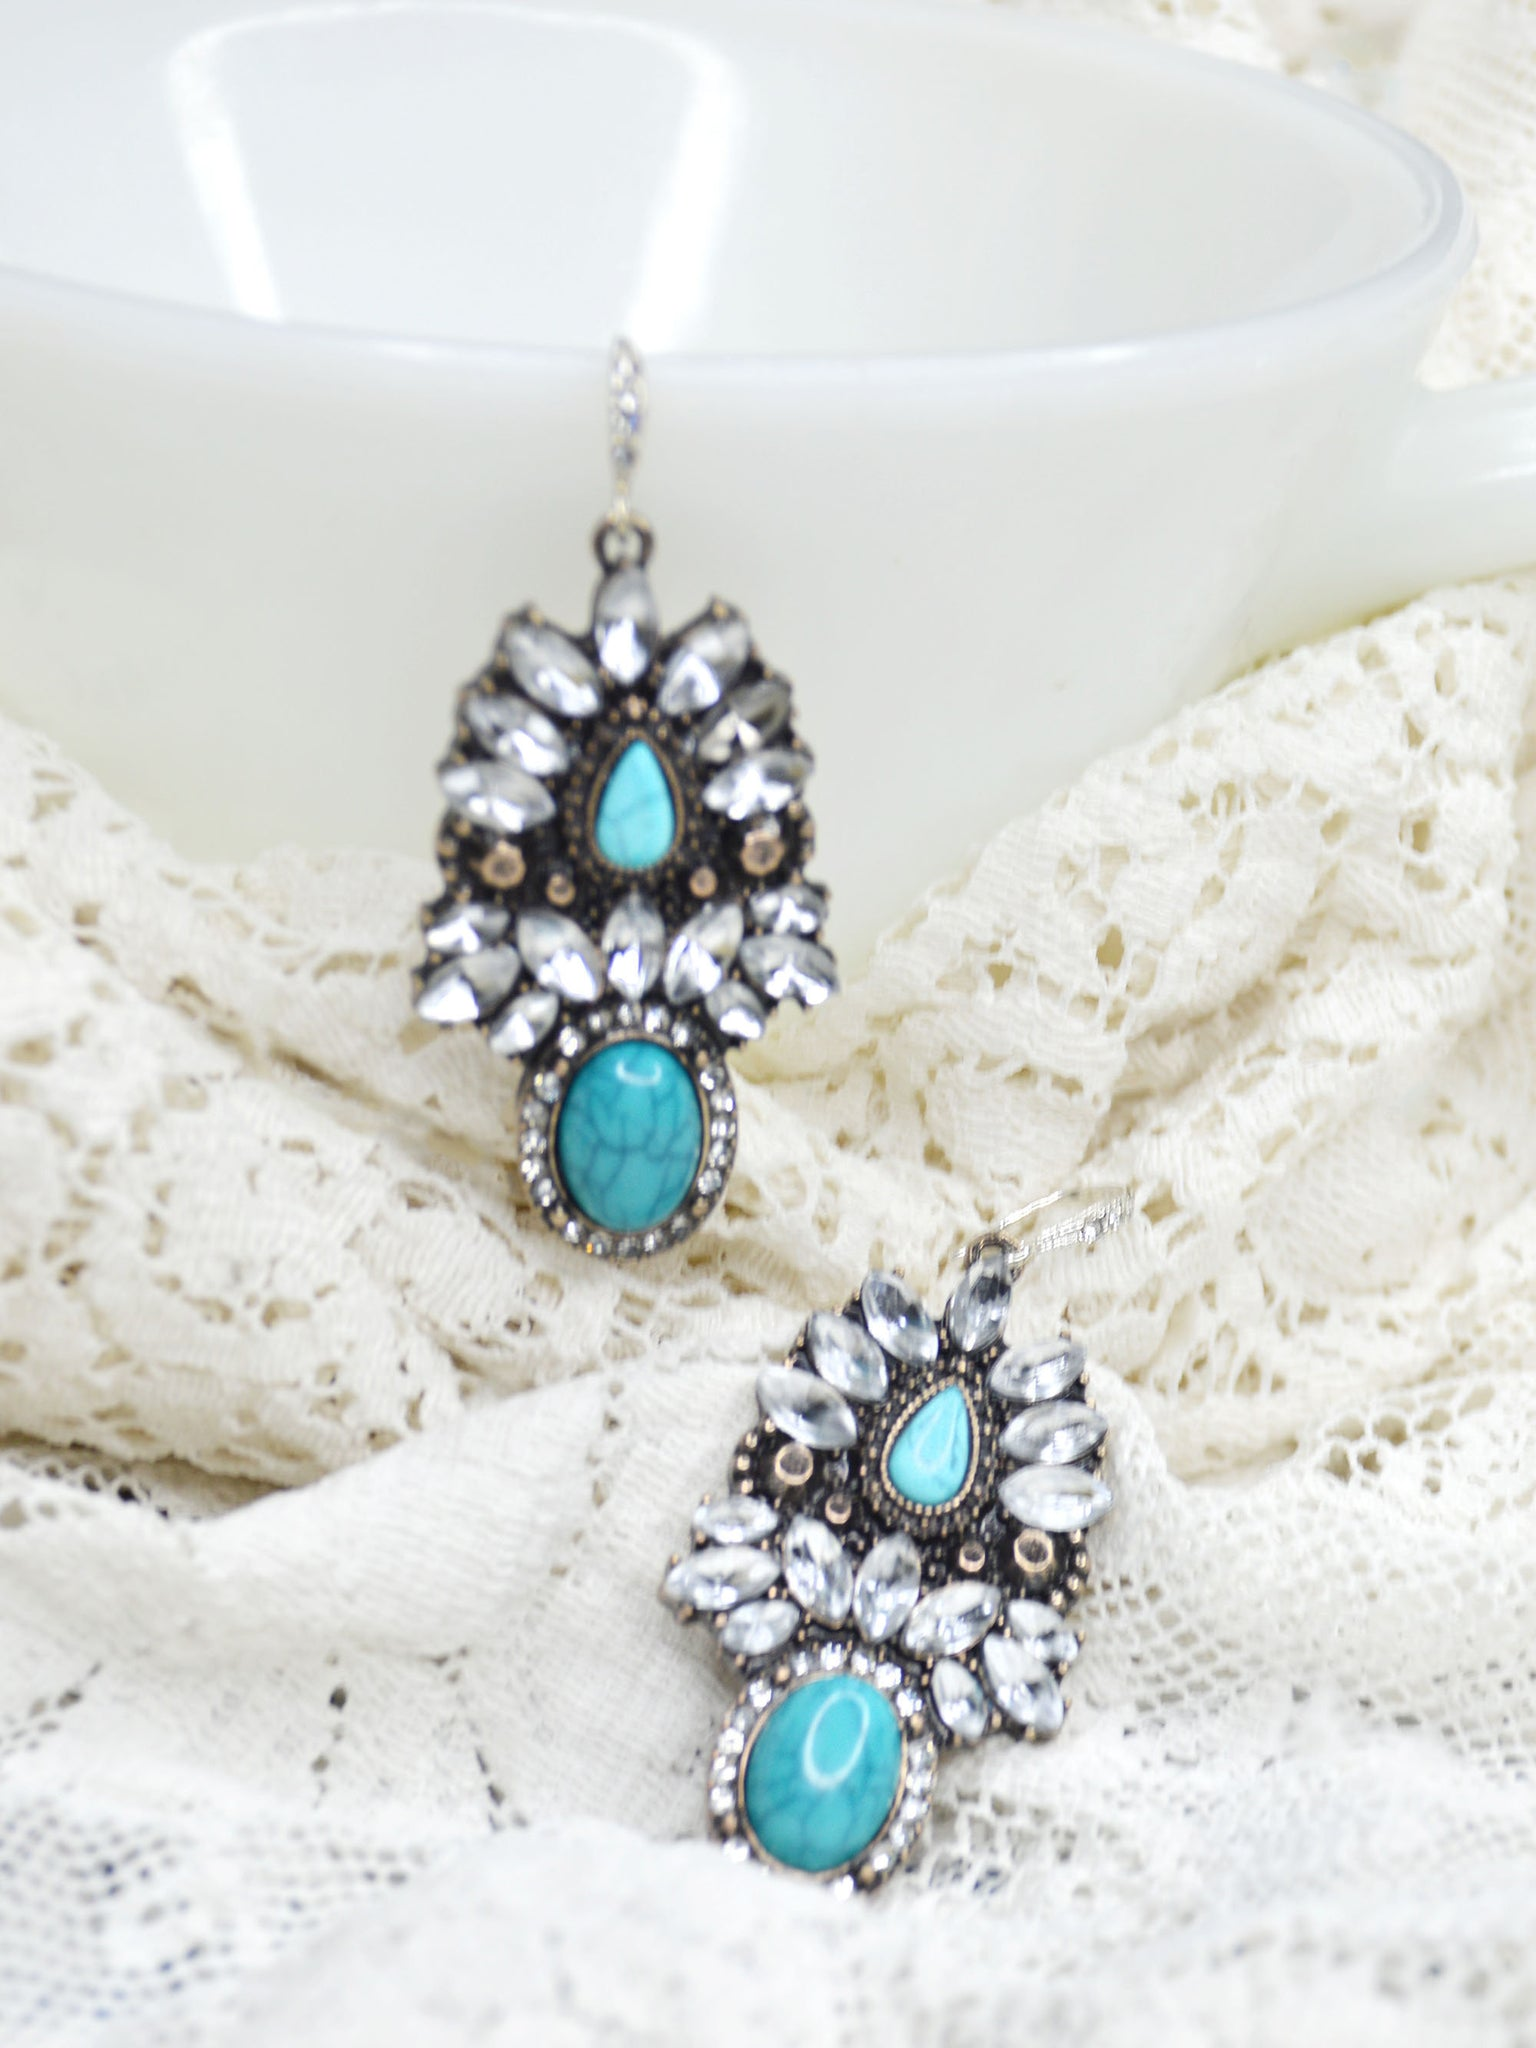 turquoise, silver, cubic zirconia, rhinestone wedding earrings